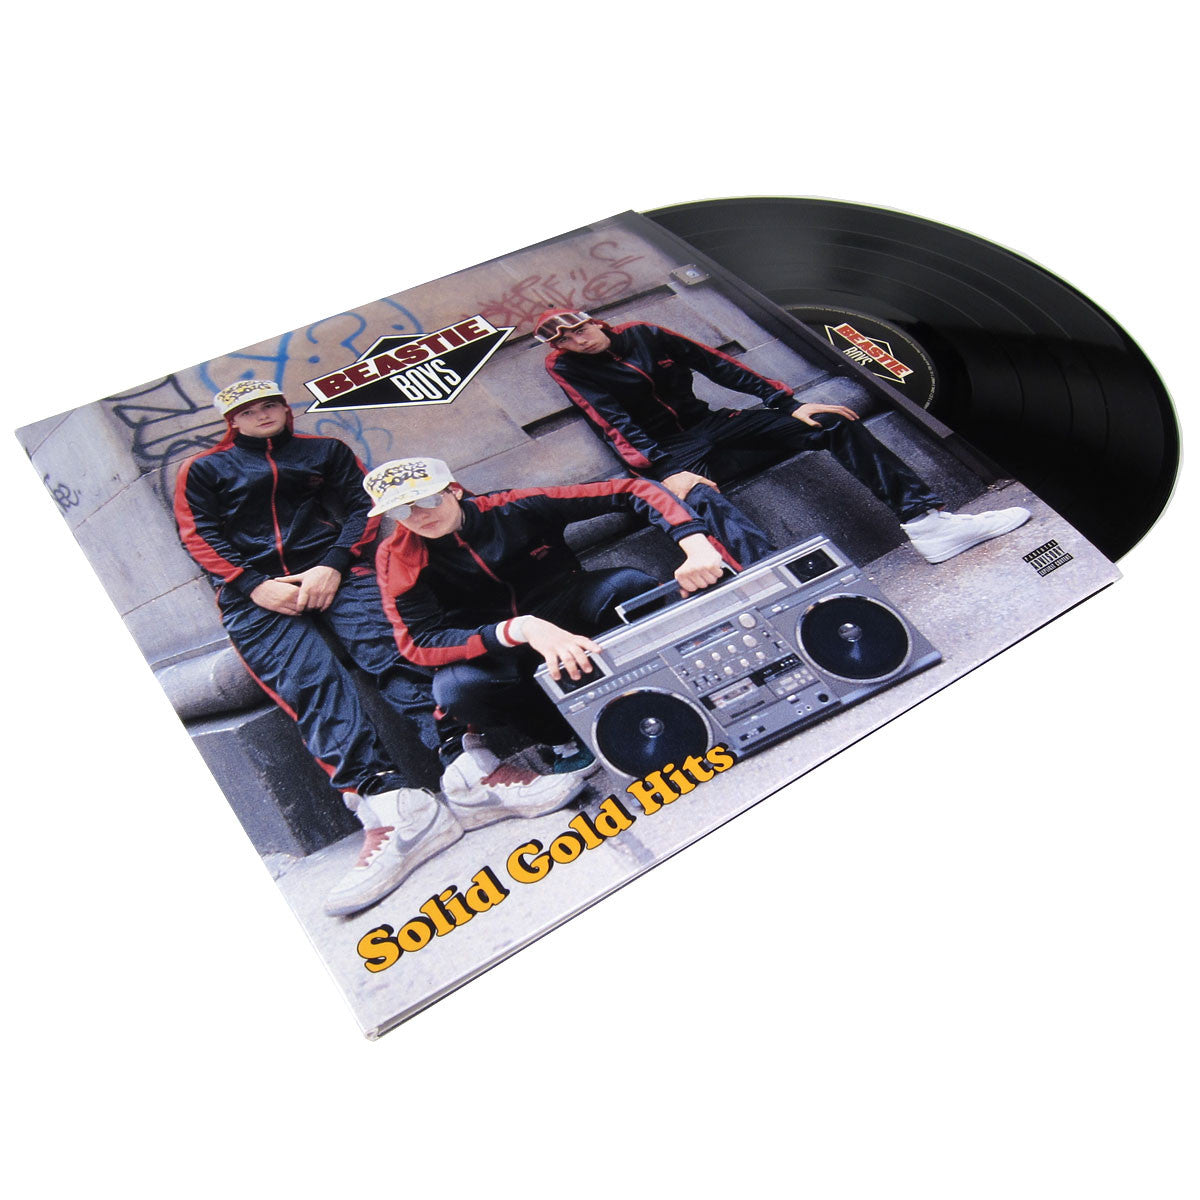 Beastie Boys: Solid Gold Hits Vinyl 2LP